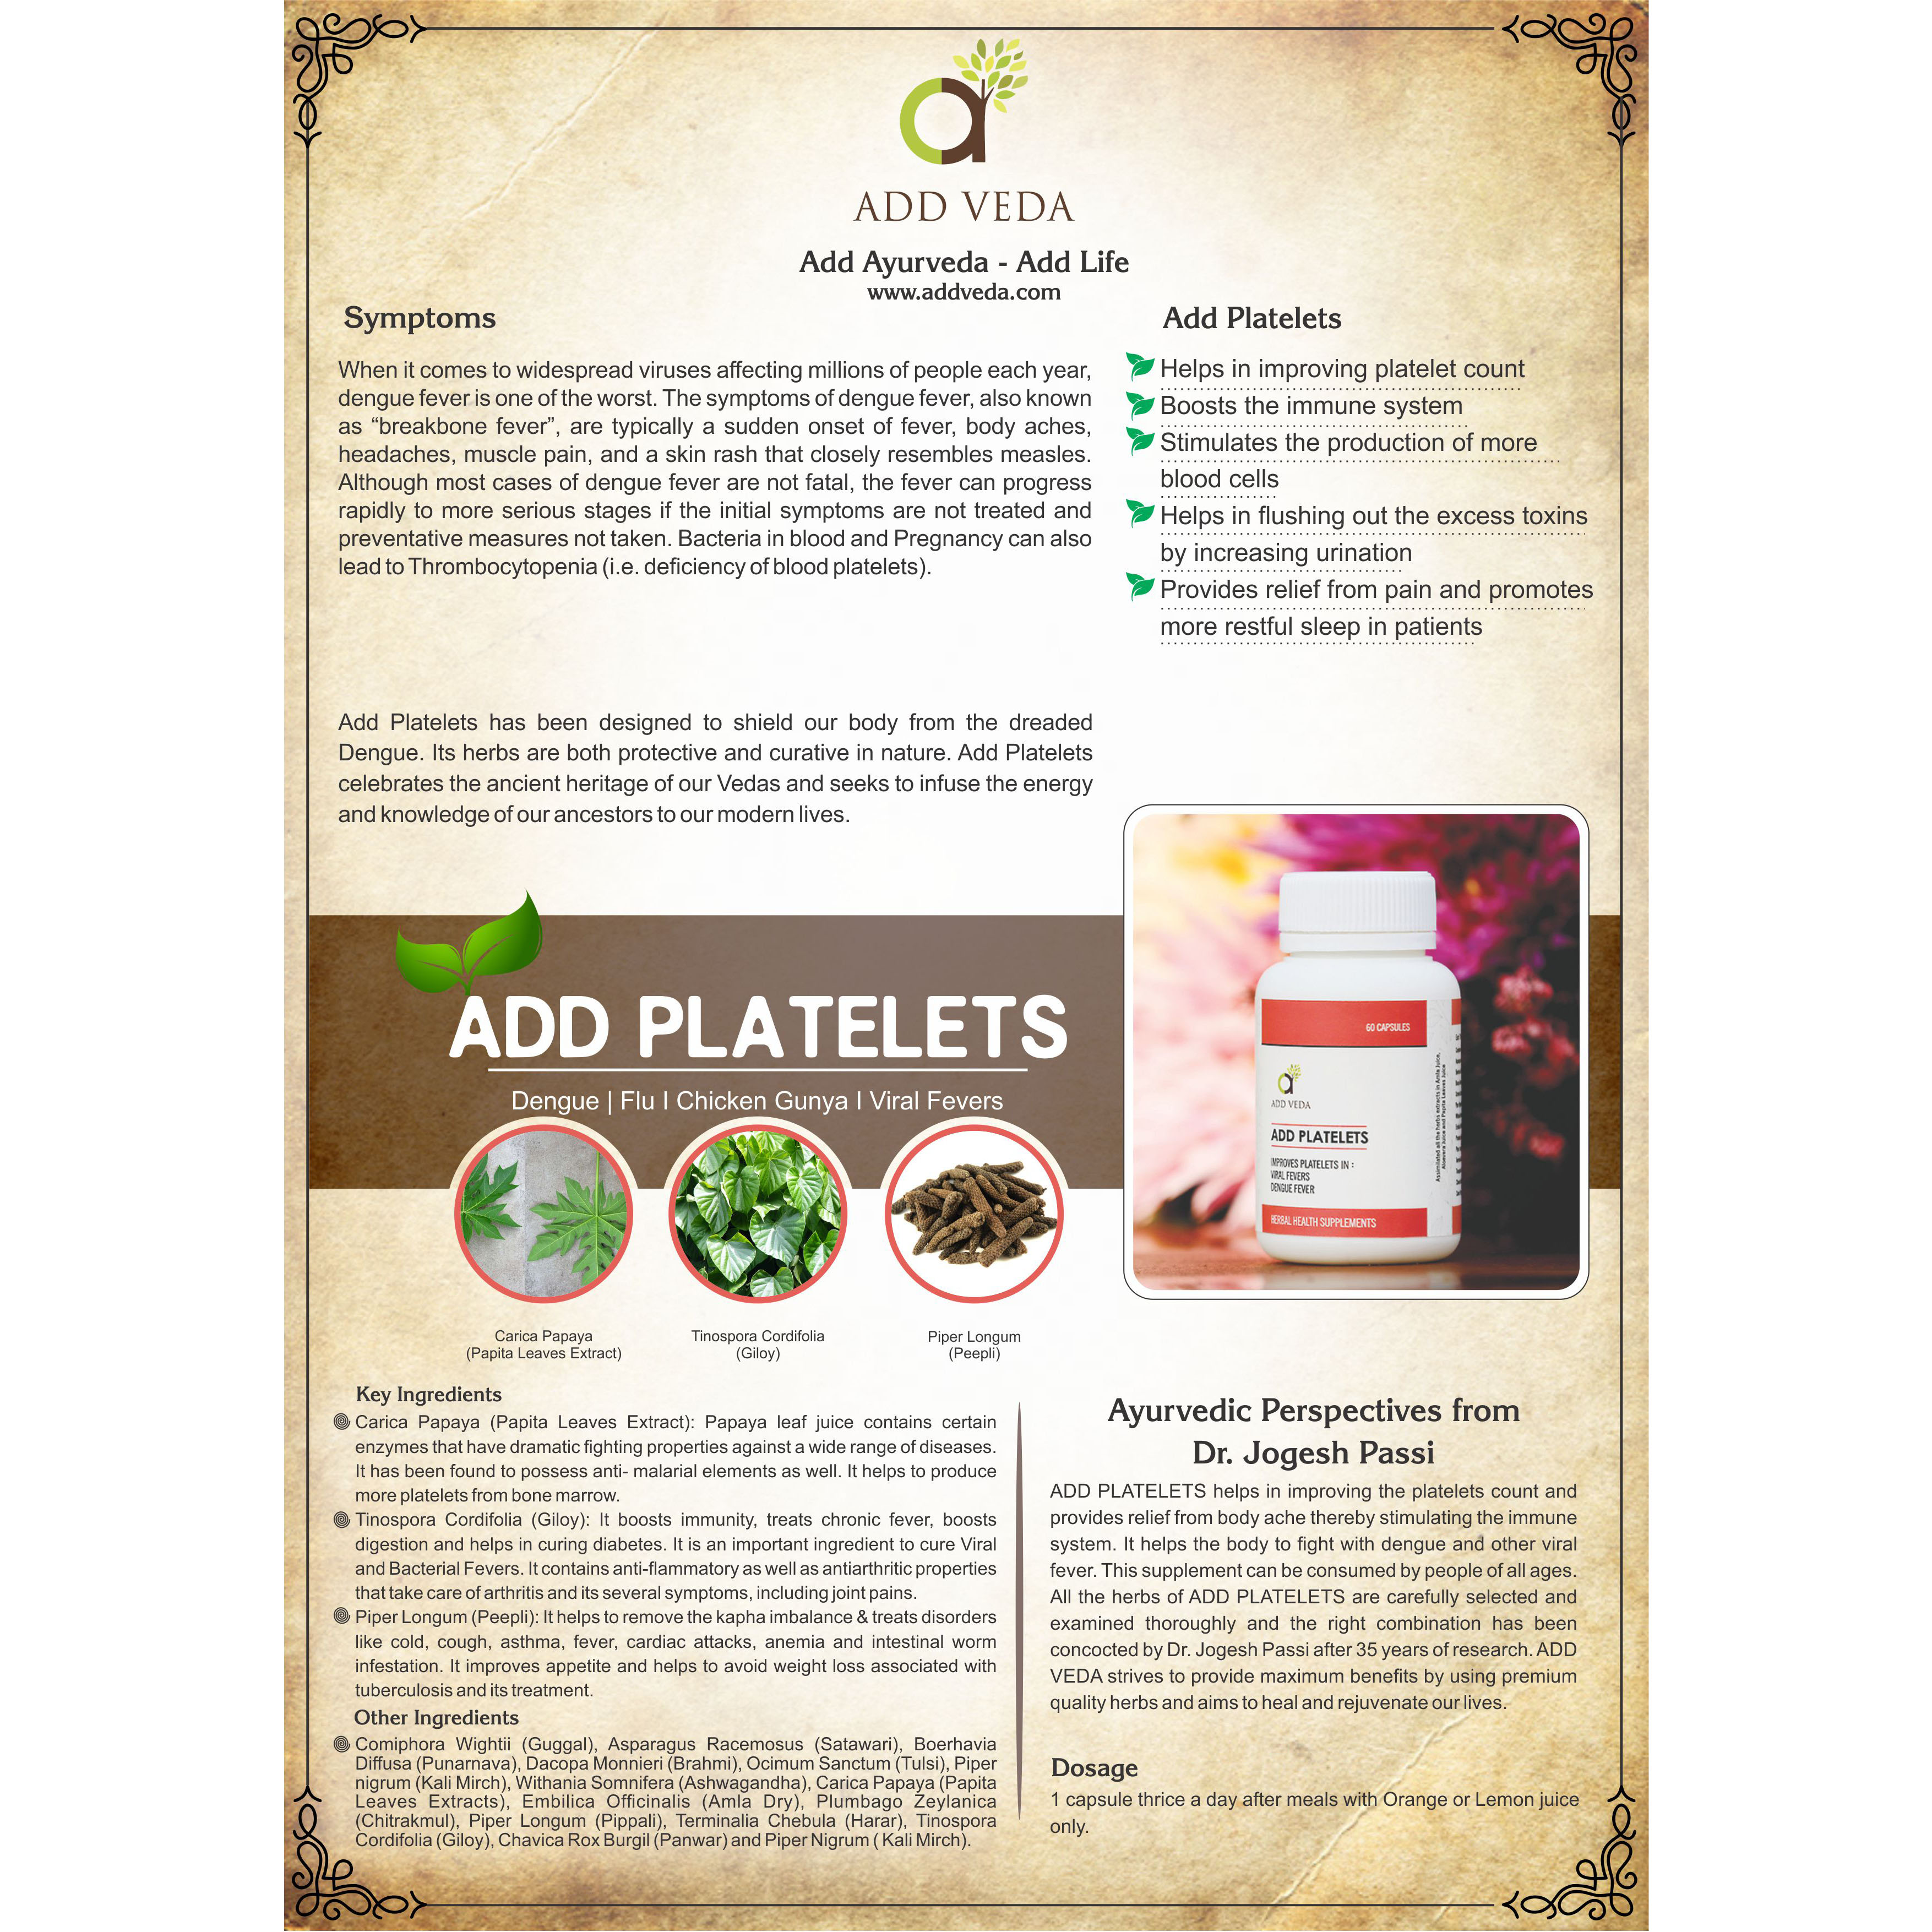 57dab39b9cca6addveda products book final add platelets.jpg